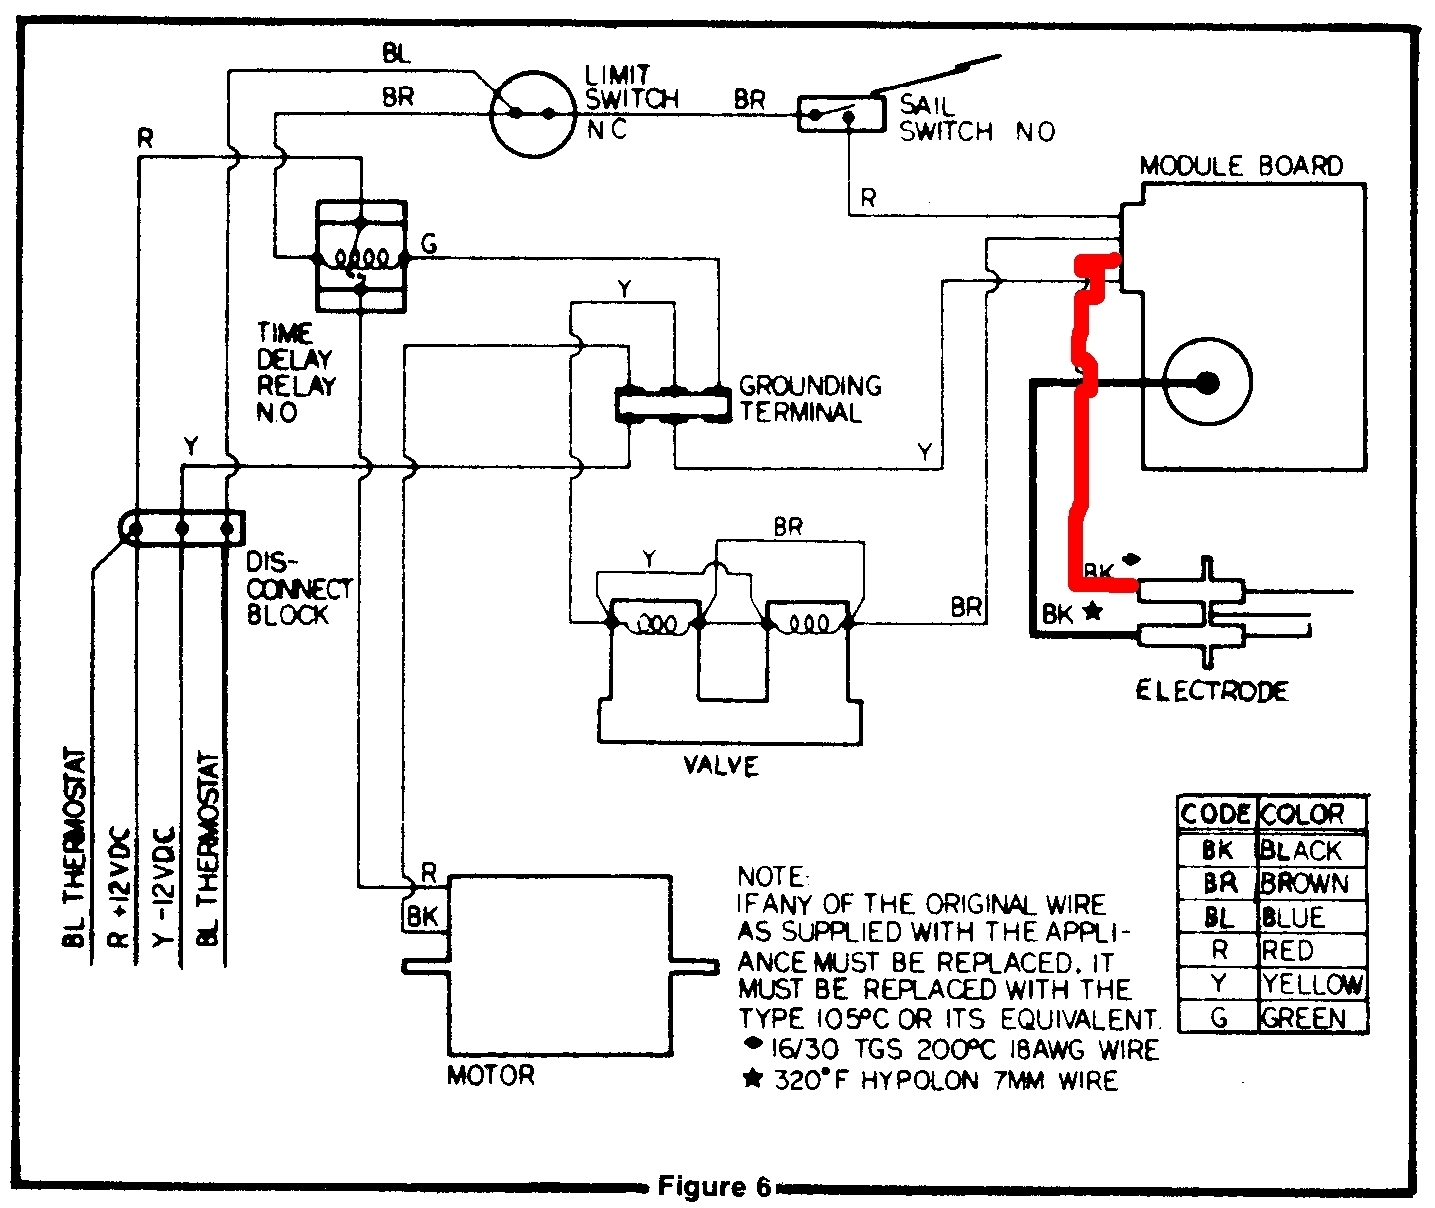 rv thermostat wiring diagram | free wiring diagram 1973 coachman rv thermostat wiring diagram